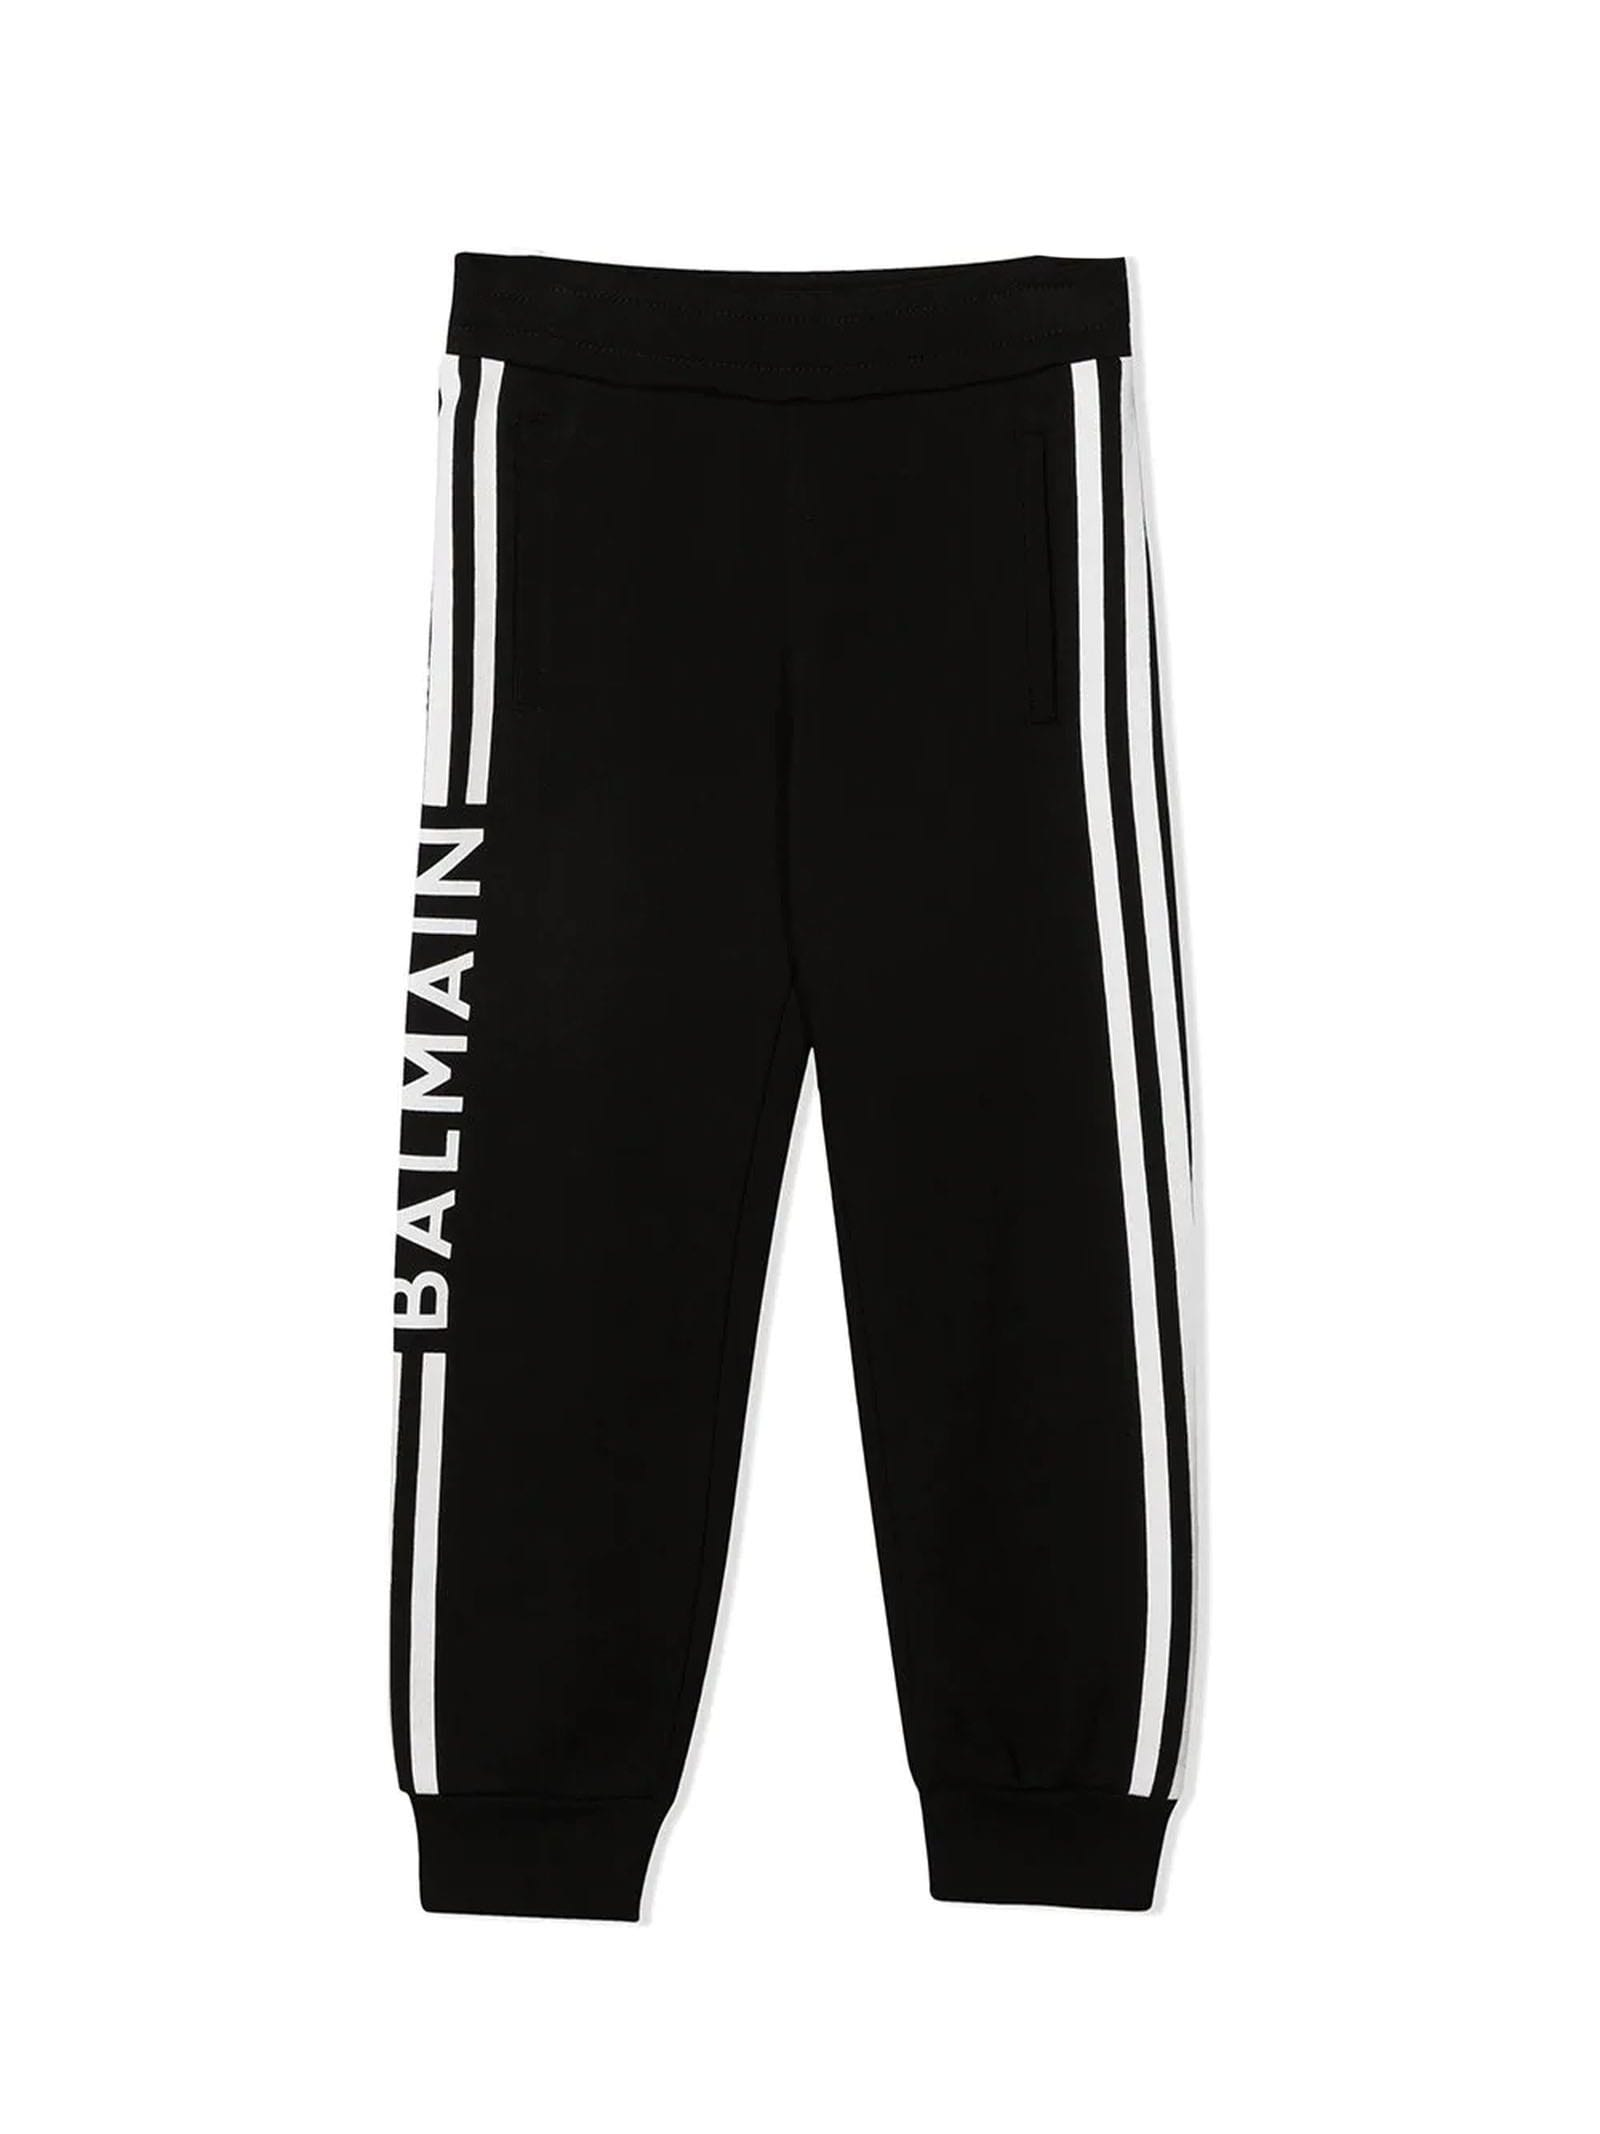 Balmain Black Cotton Track Suit